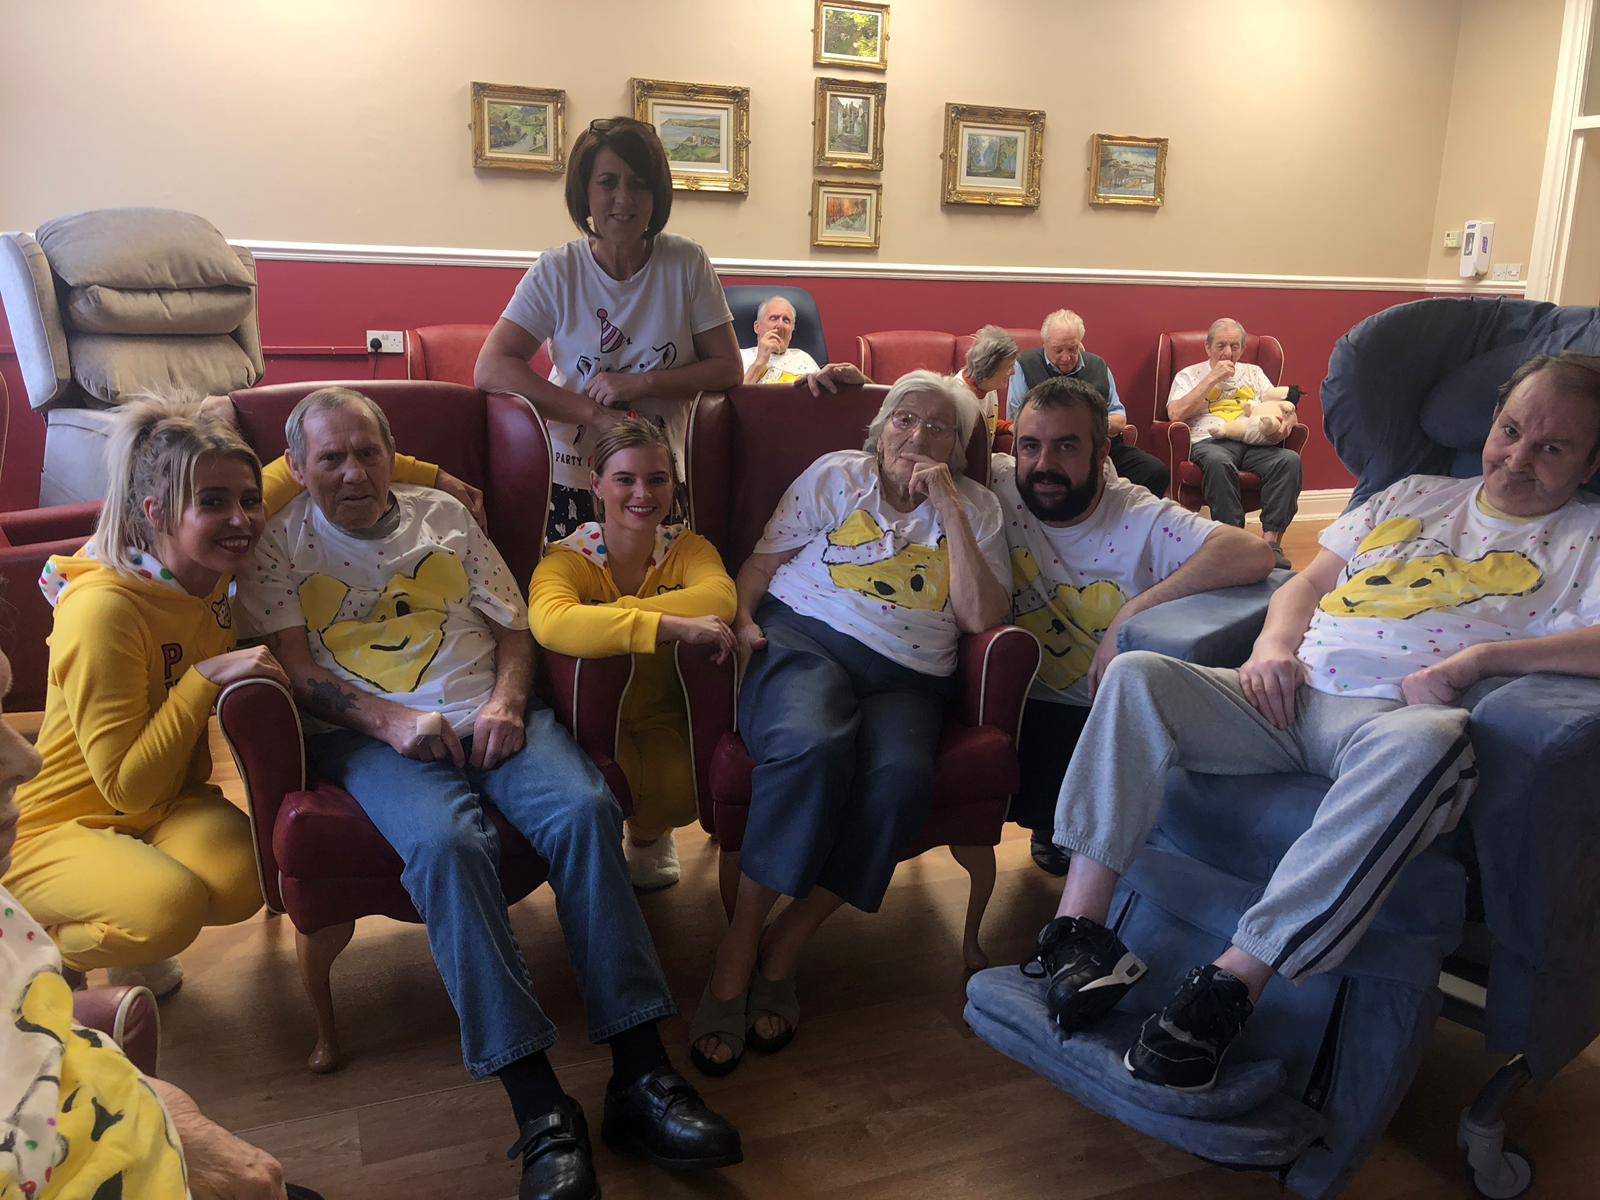 Children In Need 6: Key Healthcare is dedicated to caring for elderly residents in safe. We have multiple dementia care homes including our care home middlesbrough, our care home St. Helen and care home saltburn. We excel in monitoring and improving care levels.